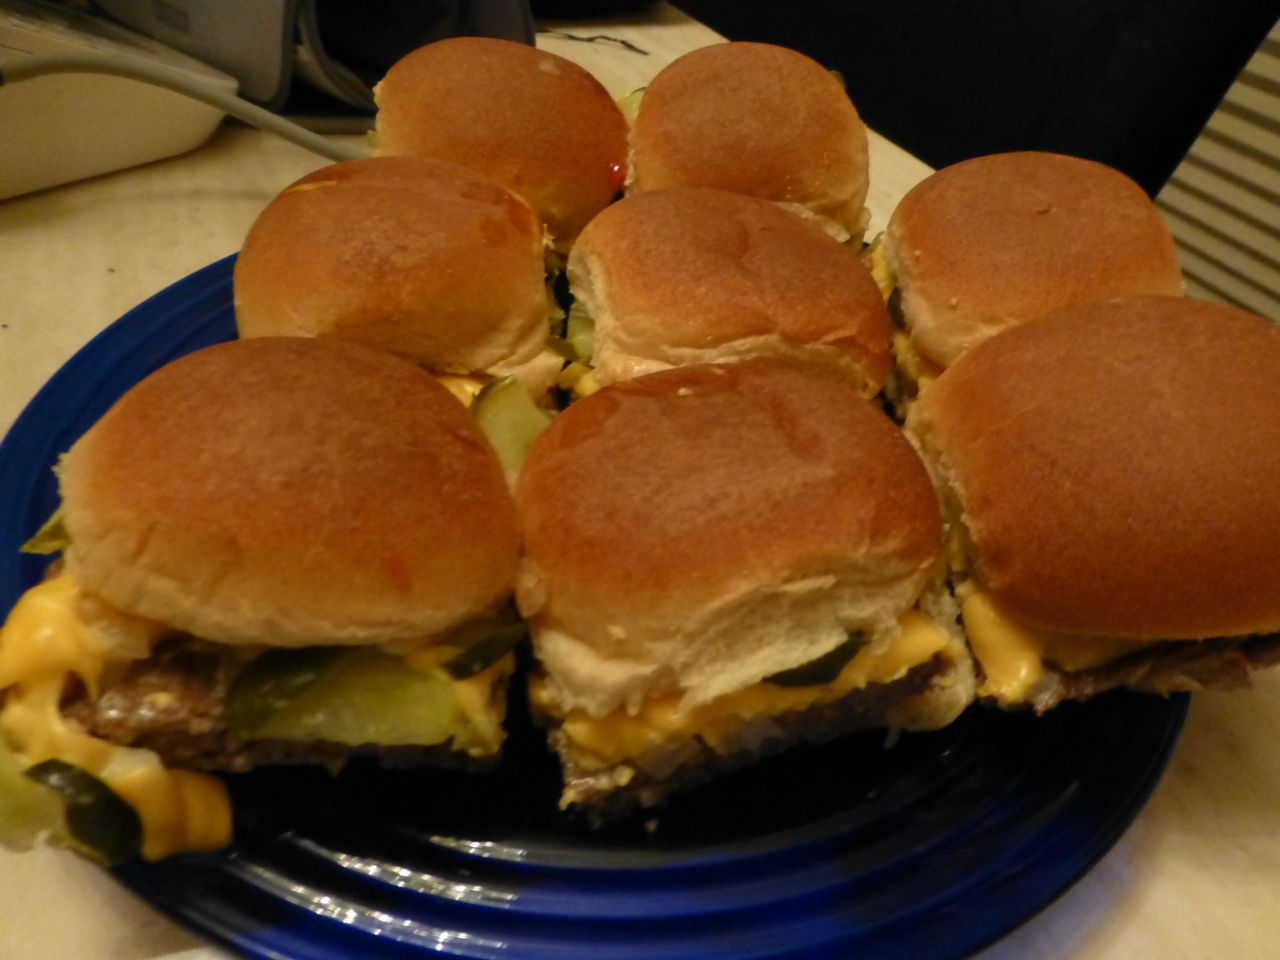 "wehavethemunchies:  On the west coast with no White Castle? No problem! I used to work there and know how to make them!  This is the best way to make them at home, the most signature part of the flavor of White Castles is actually their onion flavor and this reproduces it almost exactly. 1.5 pounds 80/20 ground beef 1 package onion soup mix 1 small onion, very finely chopped 1 dill pickle, sliced as thin as possible mustard/ketchup (if you want to feel authentic mix them together and then spread them on the bun) 12 soft dinner rolls (I like the Sara Lee ones) Good quality American Cheese sliced Mix the ground beef and onion soup mix in a bowl. Spread the ground beef on a 12-15"" cookie sheet. Use a rolling pin (or cover with parchment paper and flatten by hand) on the ground beef to flatten it out to about 1/4-1/2 inch thick. Bake at 350 degrees for 10 minutes. Take out and pour off grease. Spread diced onions along the edge of the sheet so they touch the sheet where the ground meat has shrunk away from. Bake for 15 more minutes then spread the onions evenly on top of the ground beef and layer with cheese slices. Bake another 6 minutes to melt cheese. While waiting slice your dinner rolls and wrap them all in a damp paper towel. Microwave them in the paper towel for 60 seconds to steam them. (You can also load them in a tortilla warmer instead of a paper towel if you have one.) Spread out the top buns and add mustard and ketchup on them just before you are ready to remove the ground beef from the oven. Take it out of the oven. Spread as many pickles as you like on top of the cheese. Arrange the top buns on the ground beef to make hamburgers. Slice the ground beef between the buns with a pizza cutter and pick up the top bun and burger with a spatula and set it on the bottom bun. Holy Crap, you just made fresh White Castles at home! Enjoy!"